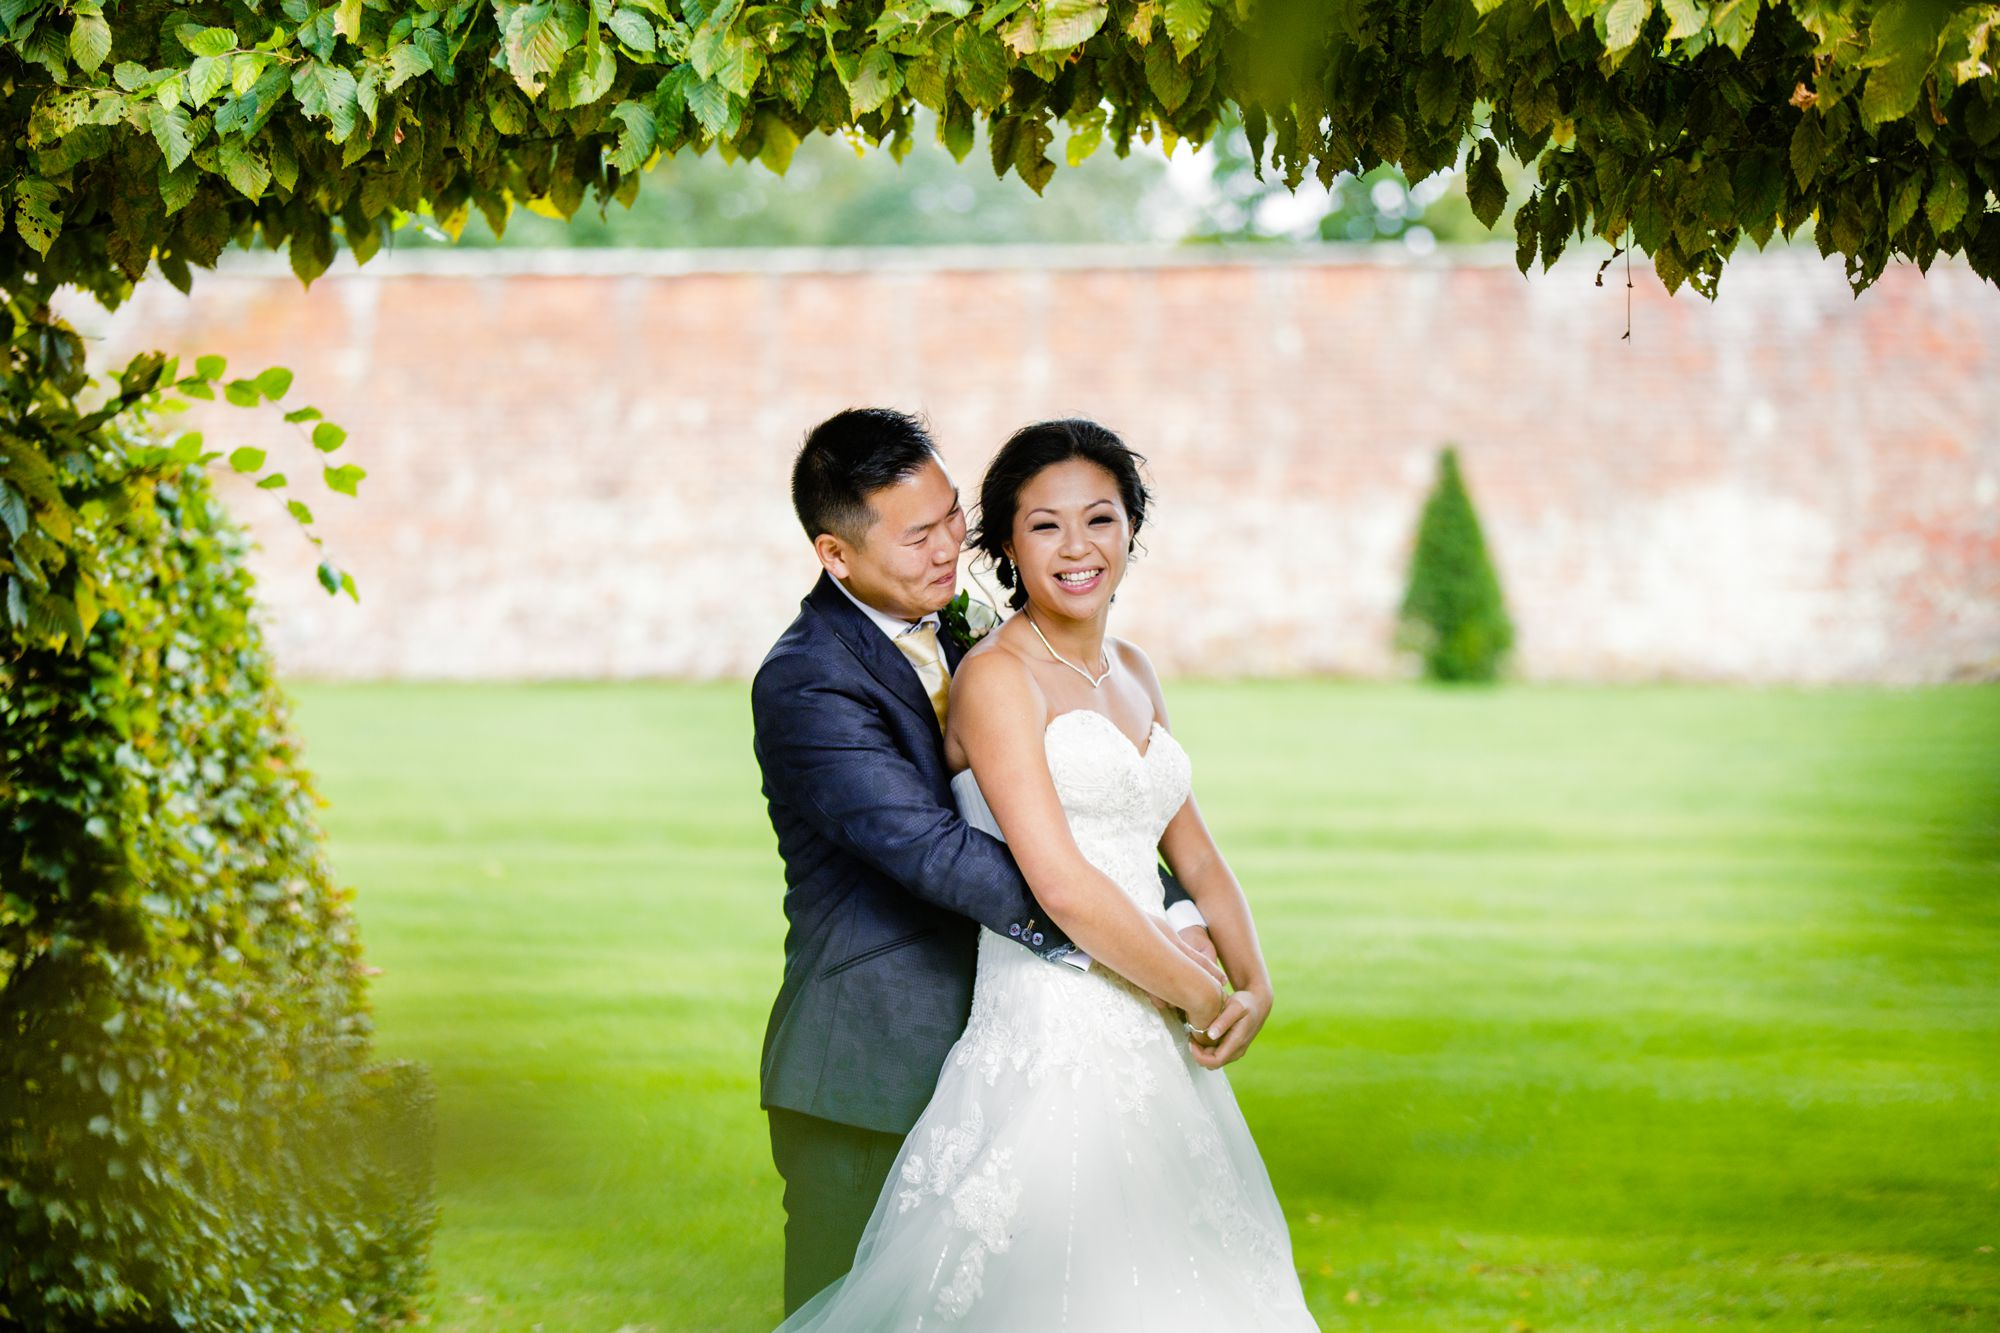 Combermere Abbey Cheshire Wedding Photographer-166.jpg